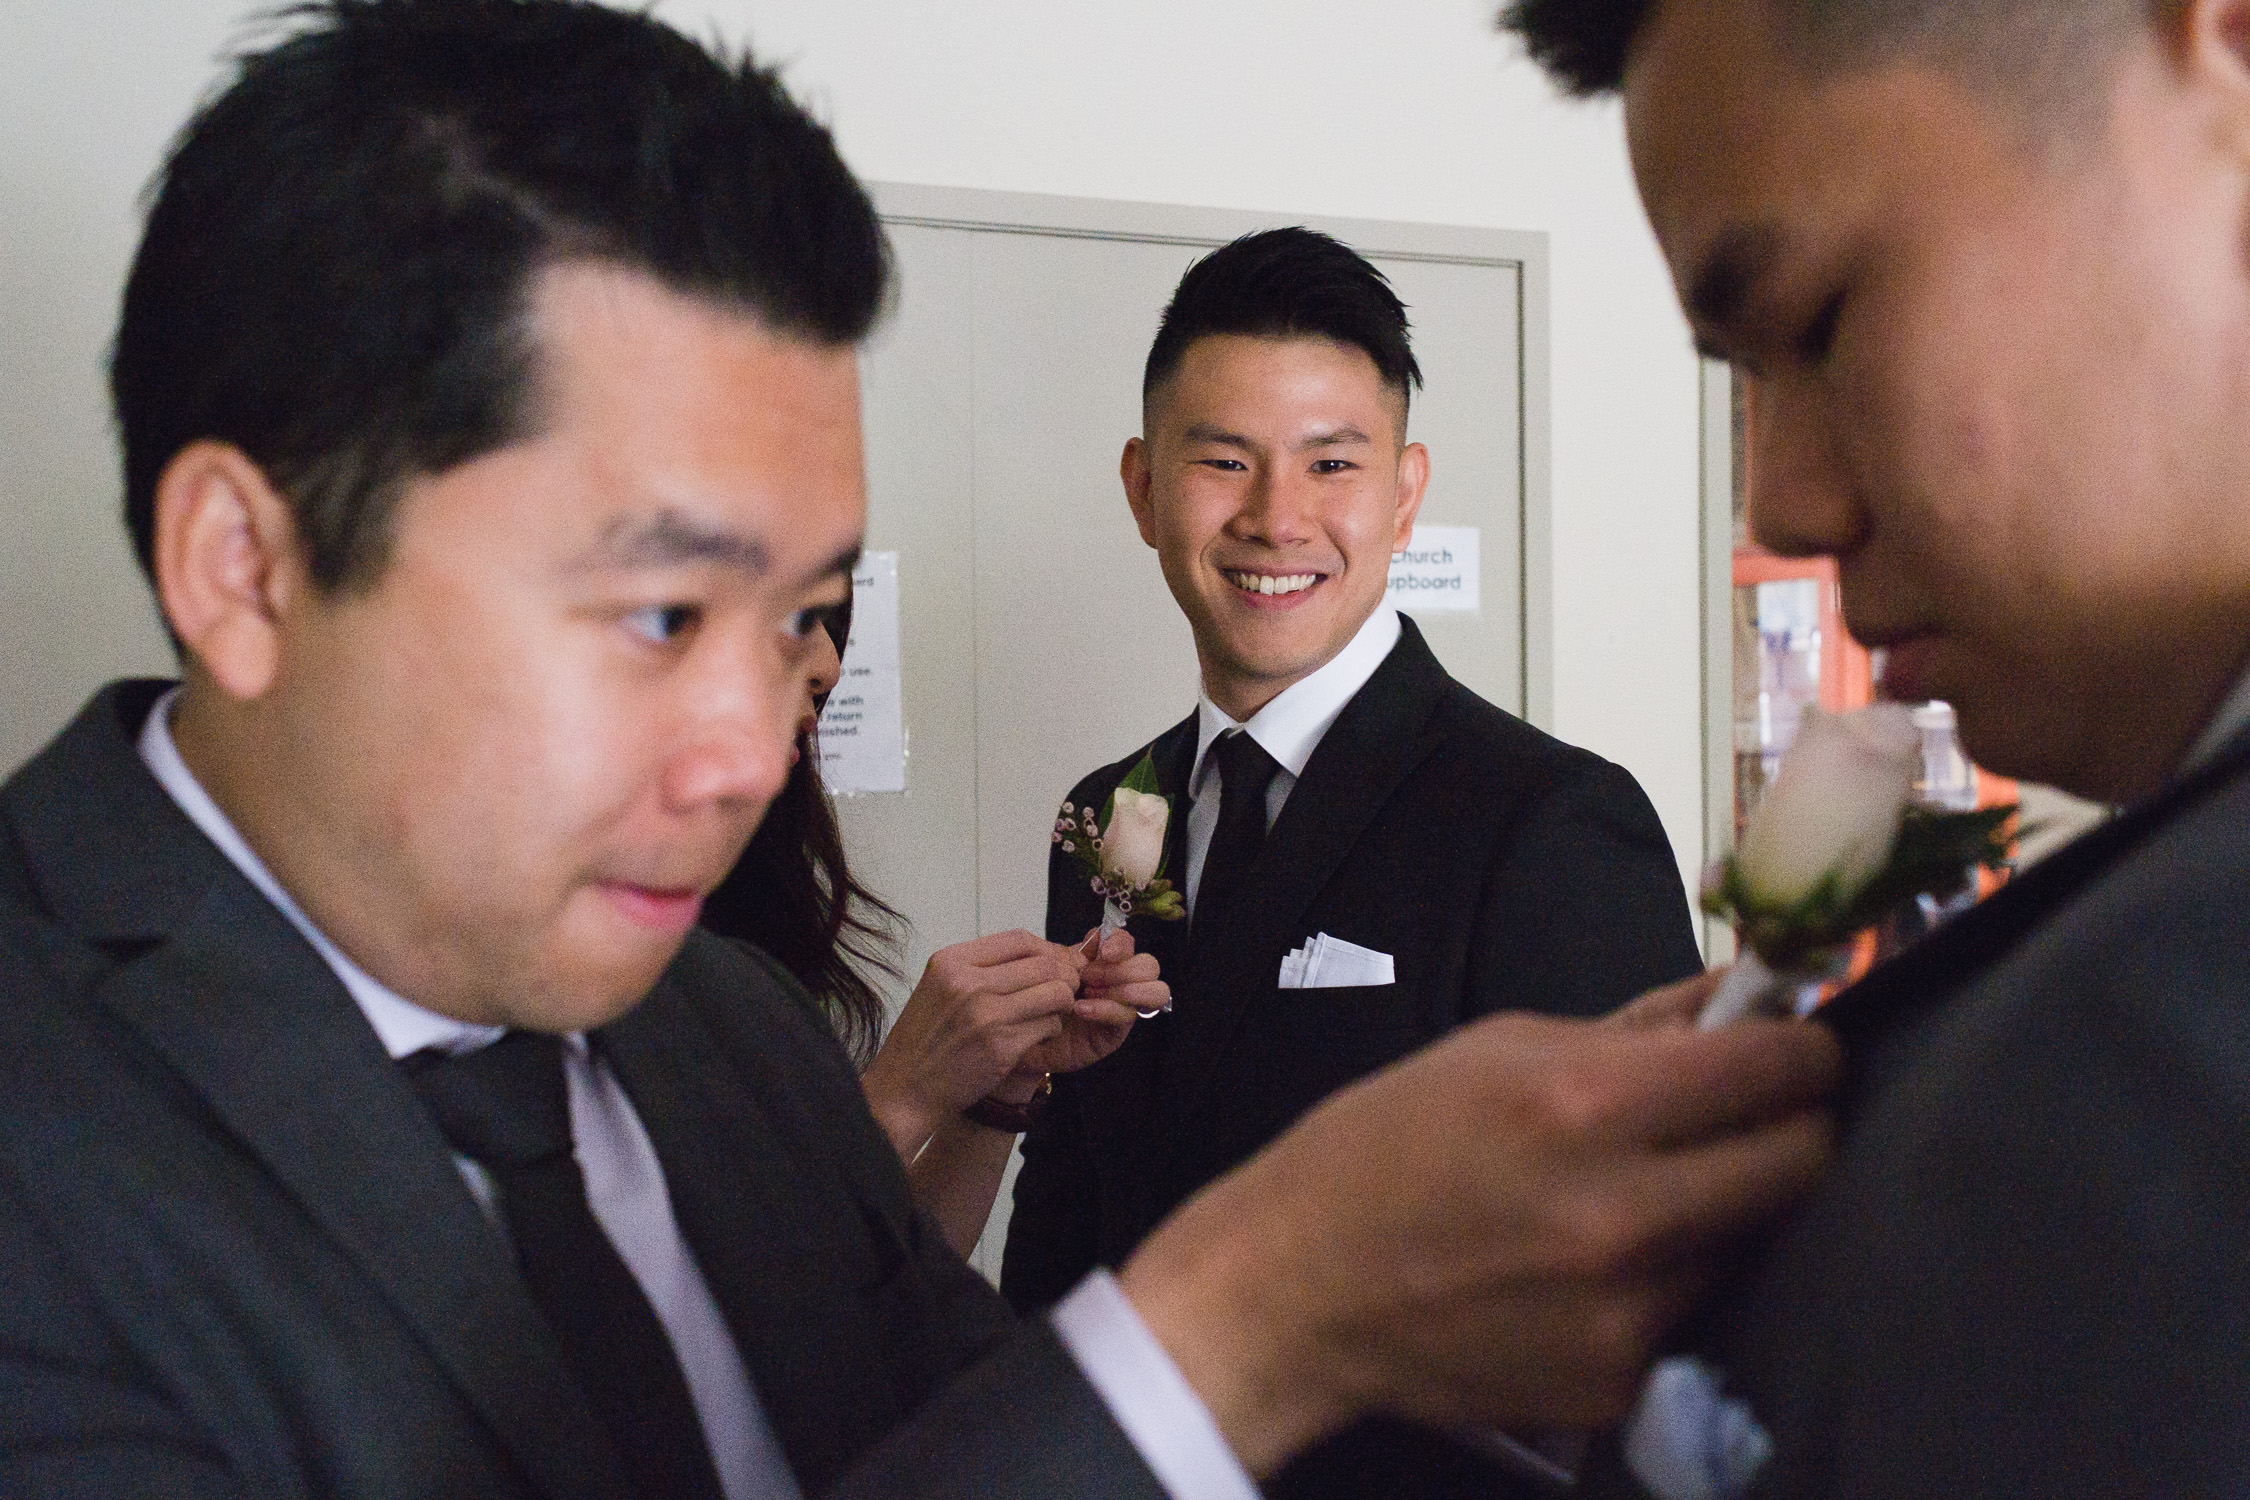 Lynsey and Kai's Melbourne wedding - Groom and groomsmen getting ready with boutonniere at wedding venue in Melbourne